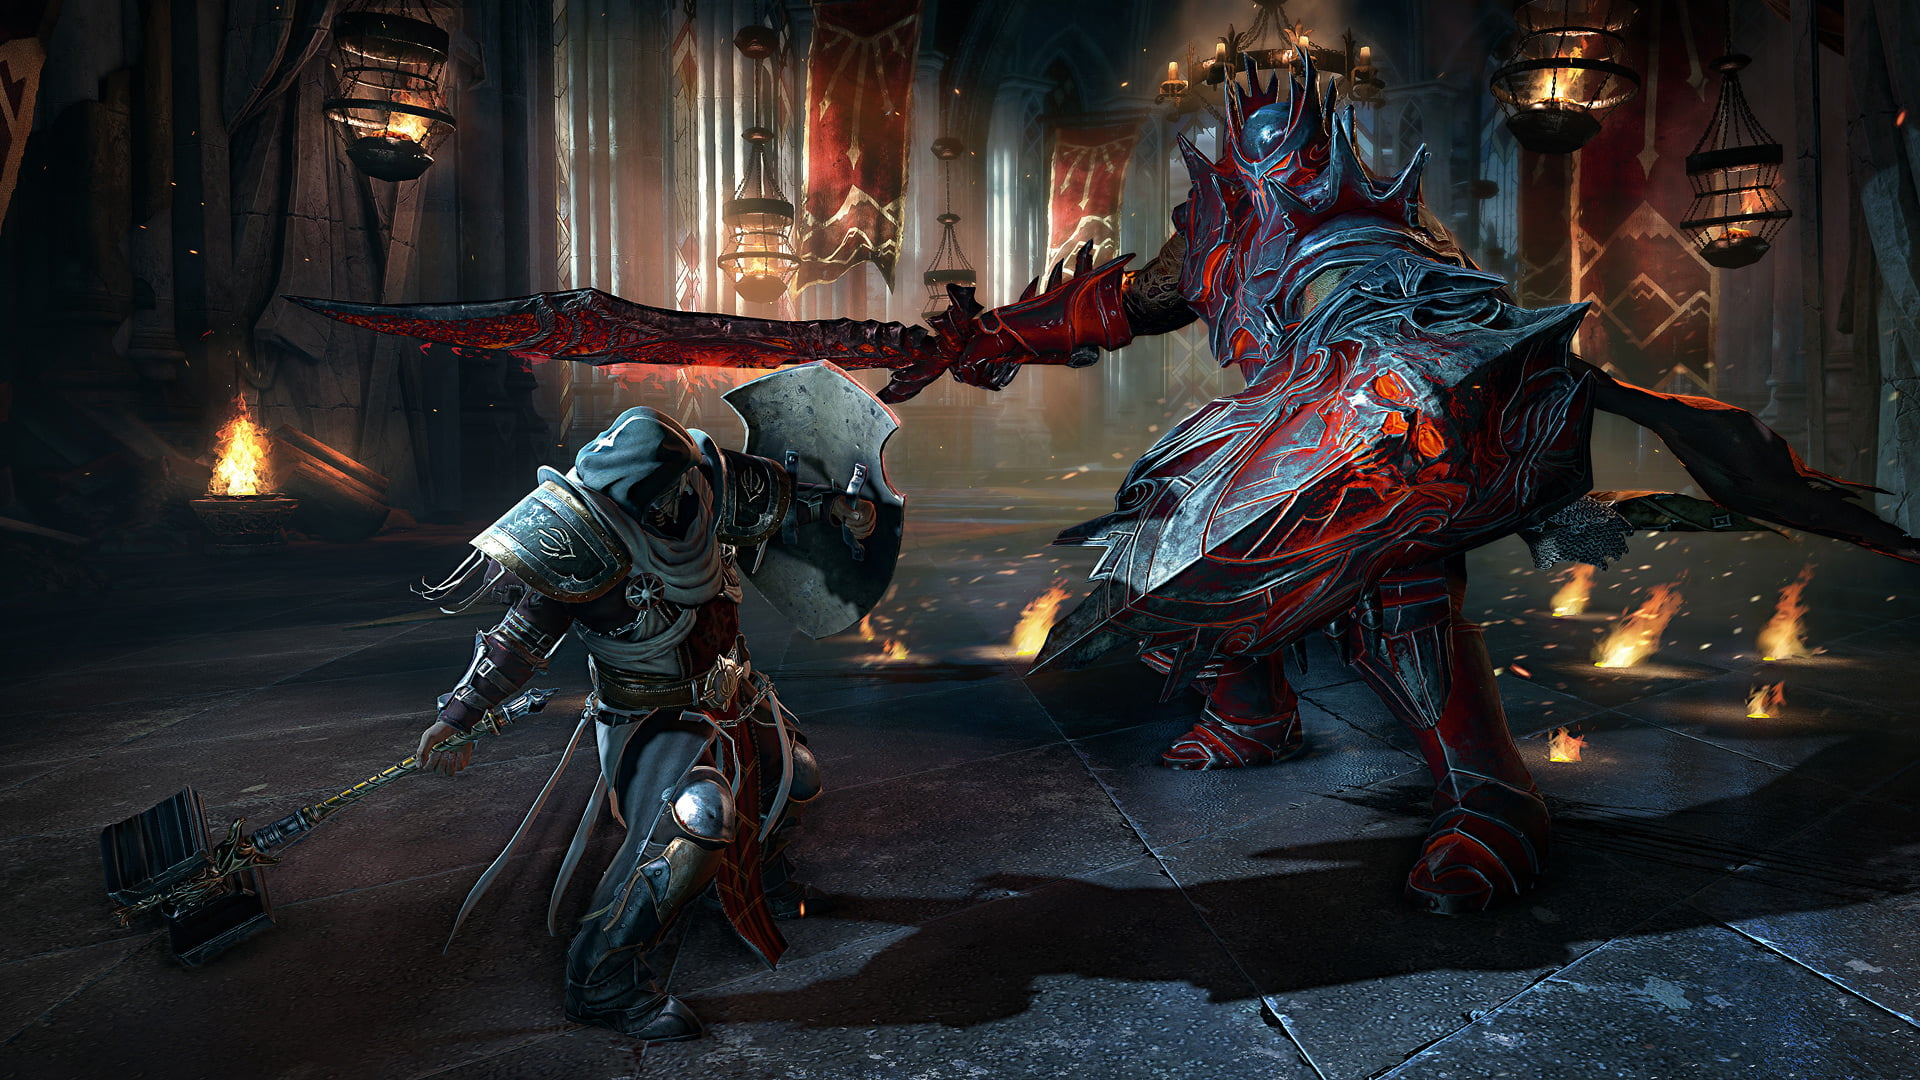 Lords of the Fallen